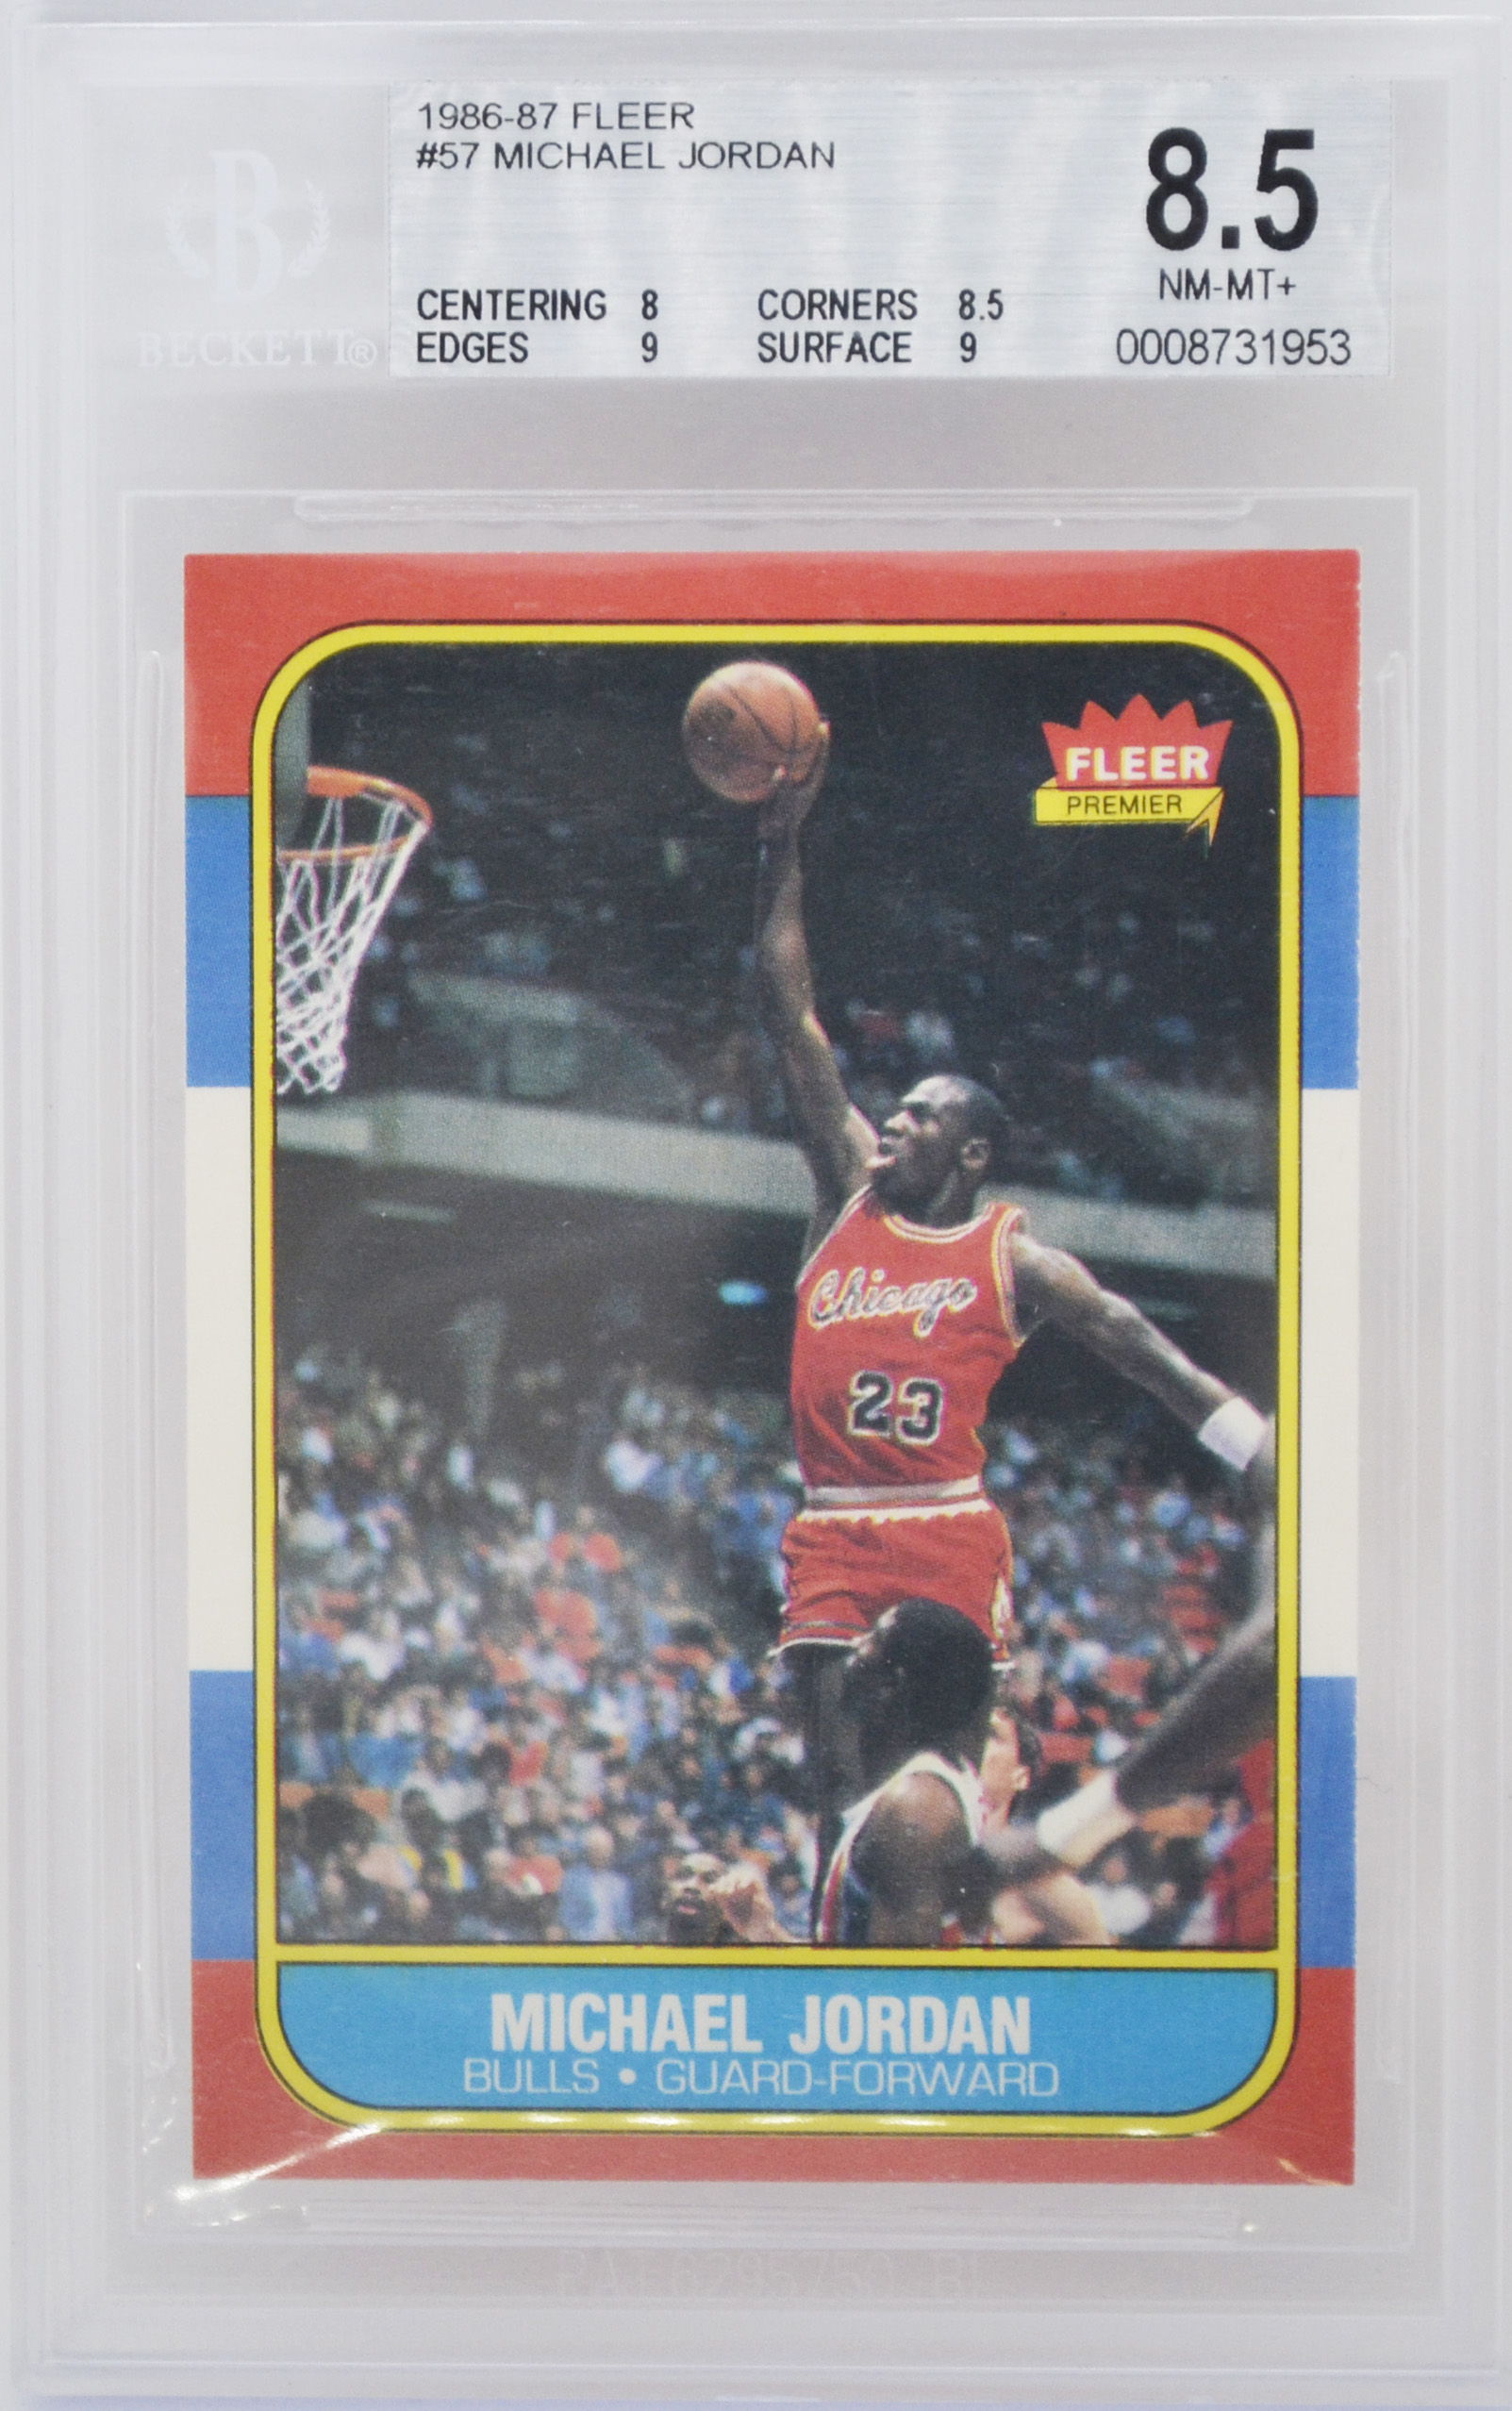 1986 fleer michael jordan rookie card